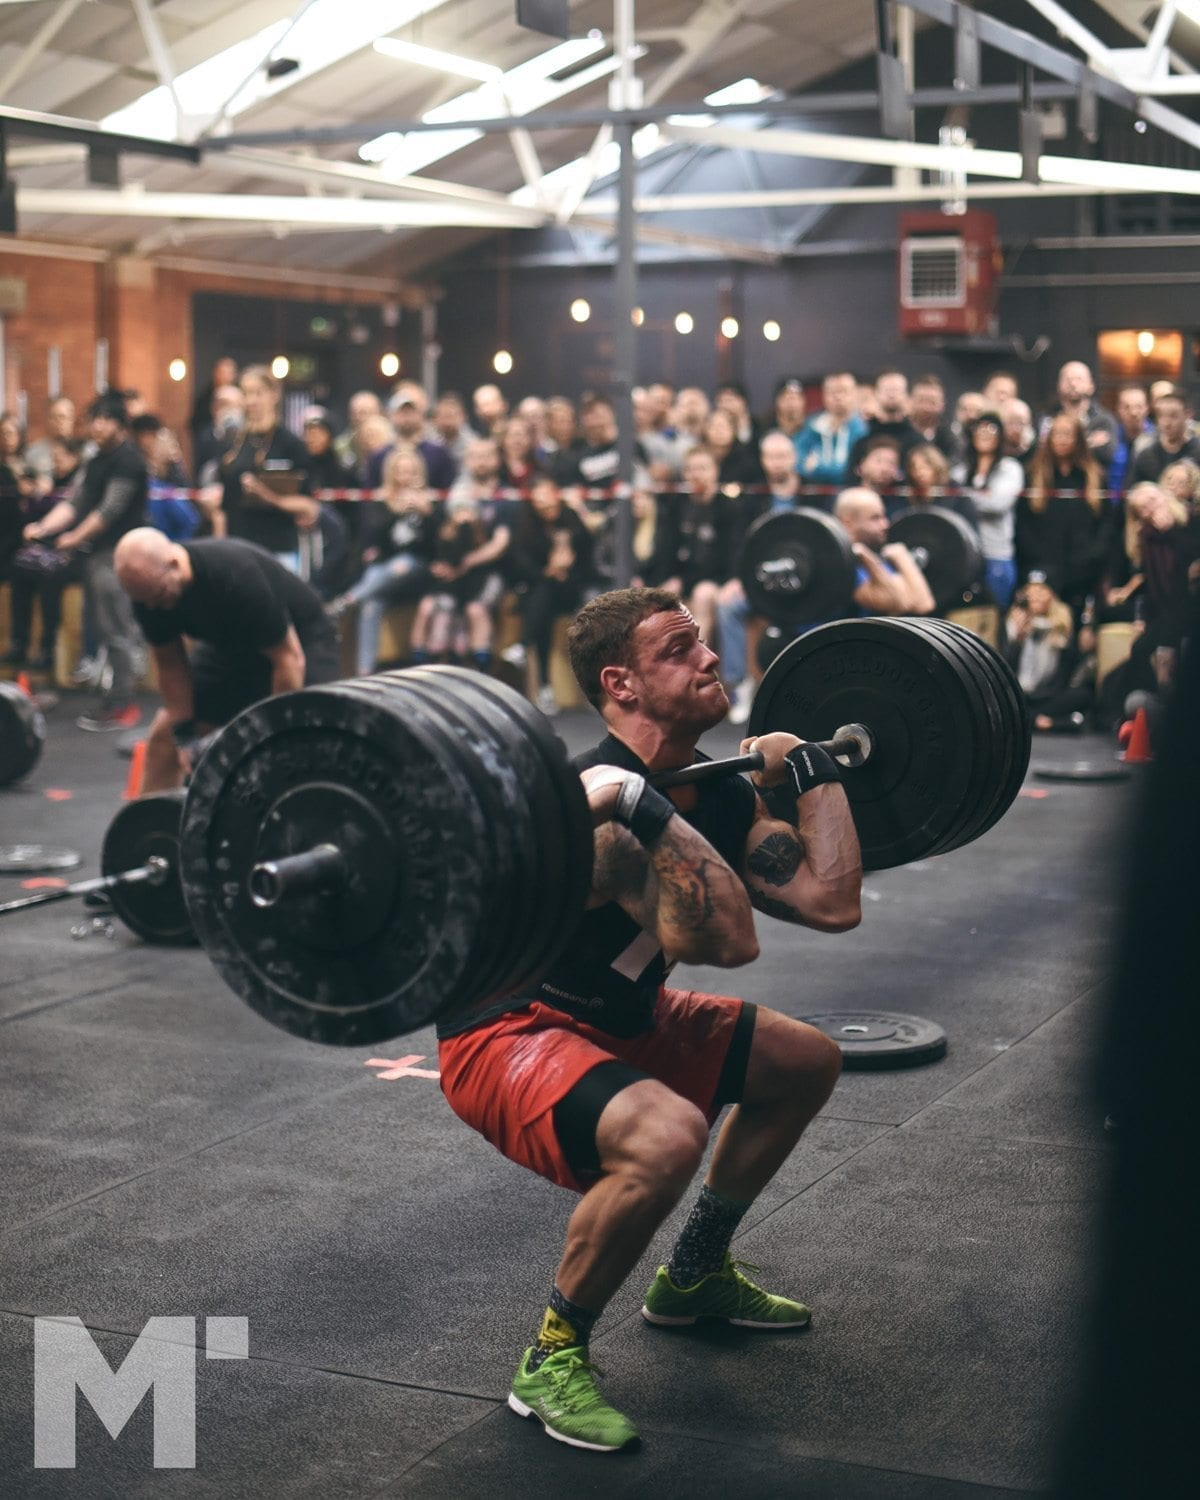 feMale CrossFit Competition - Winter - M Squared, Manchester